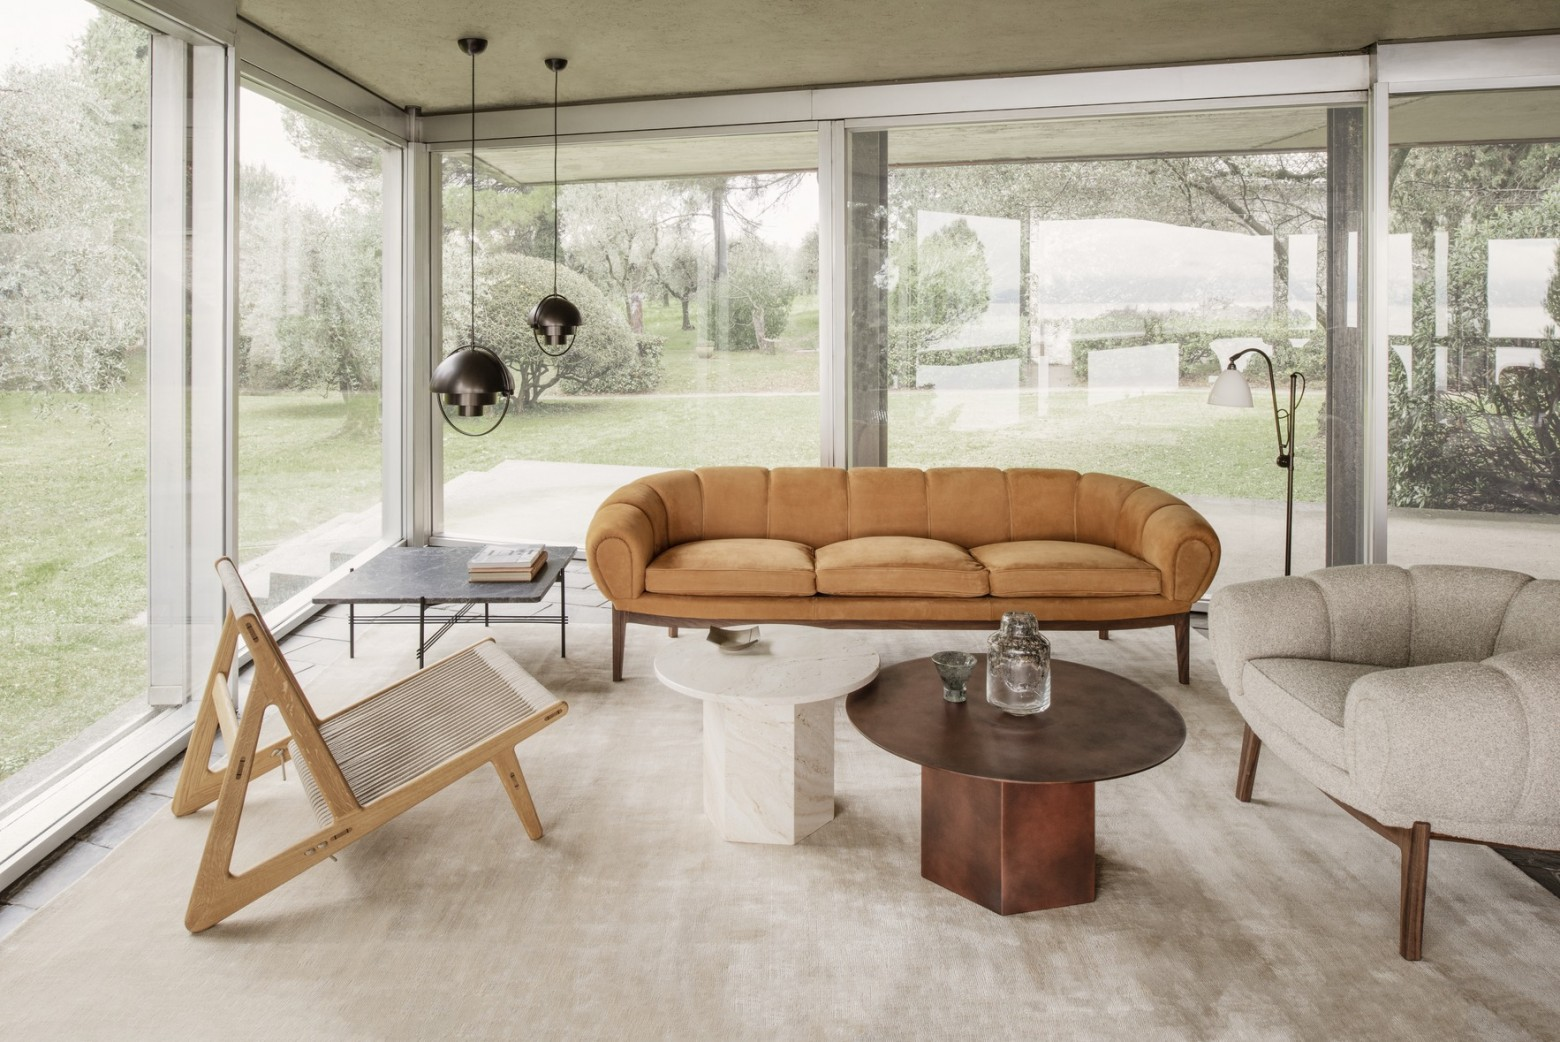 Gubi news 2021: Croissant collectie, Initial chair, Epic STAAL,...     Victors Design Agency